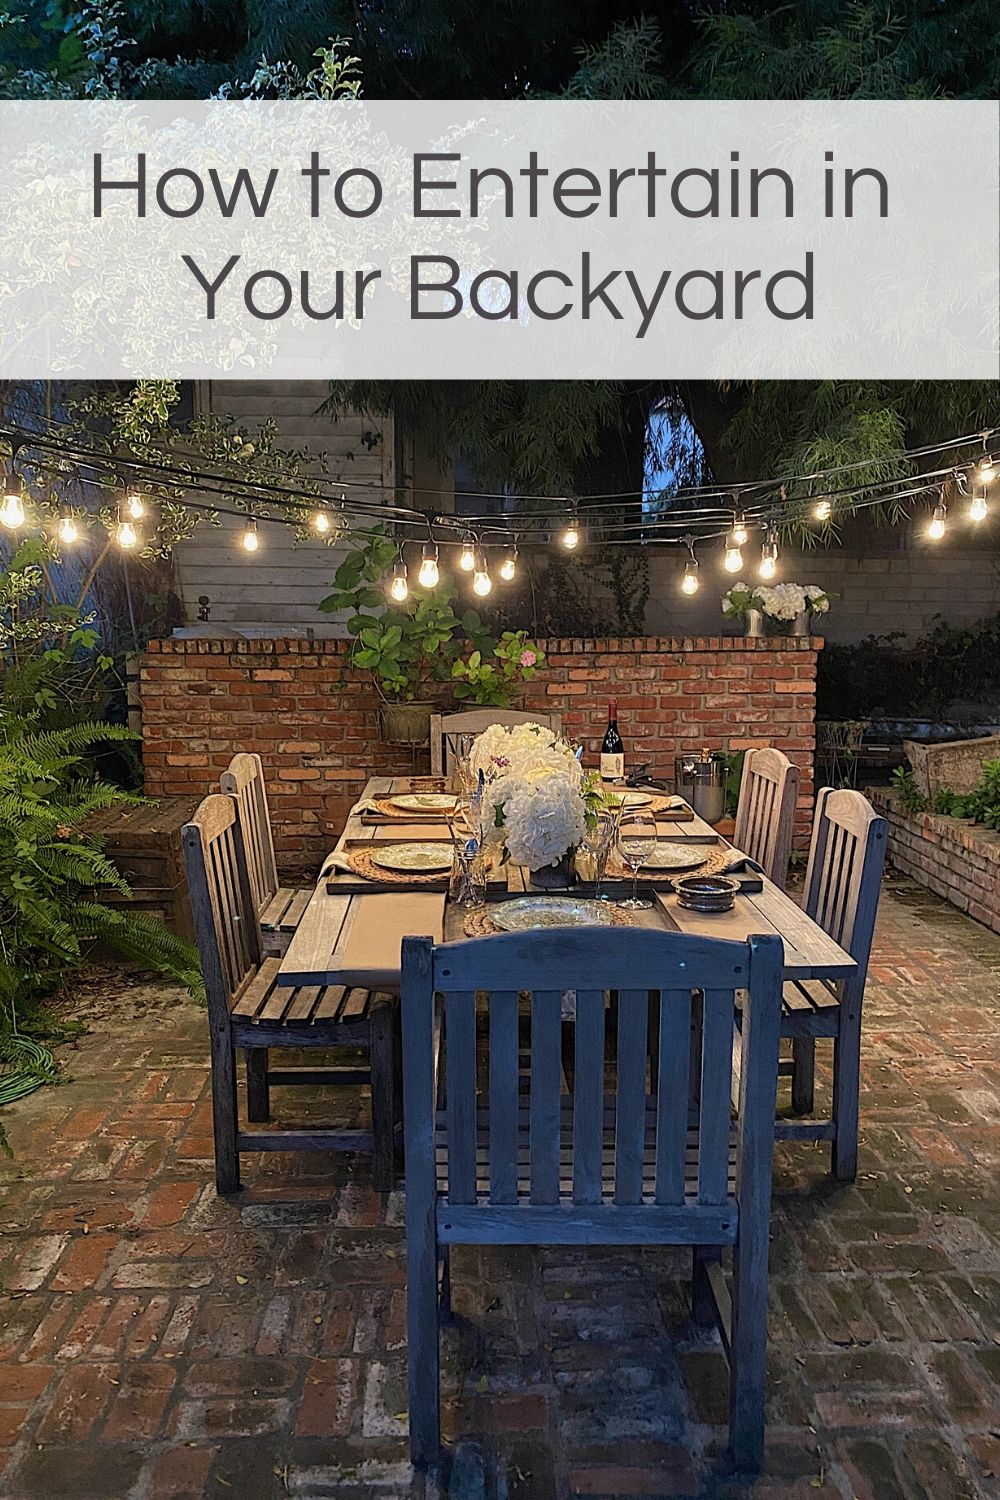 Entertaining is my passion. I truly believe entertaining can be inexpensive and easy to do, but also look amazing! Today I am sharing a party I hosted for our family that you can share in your own backyard too!